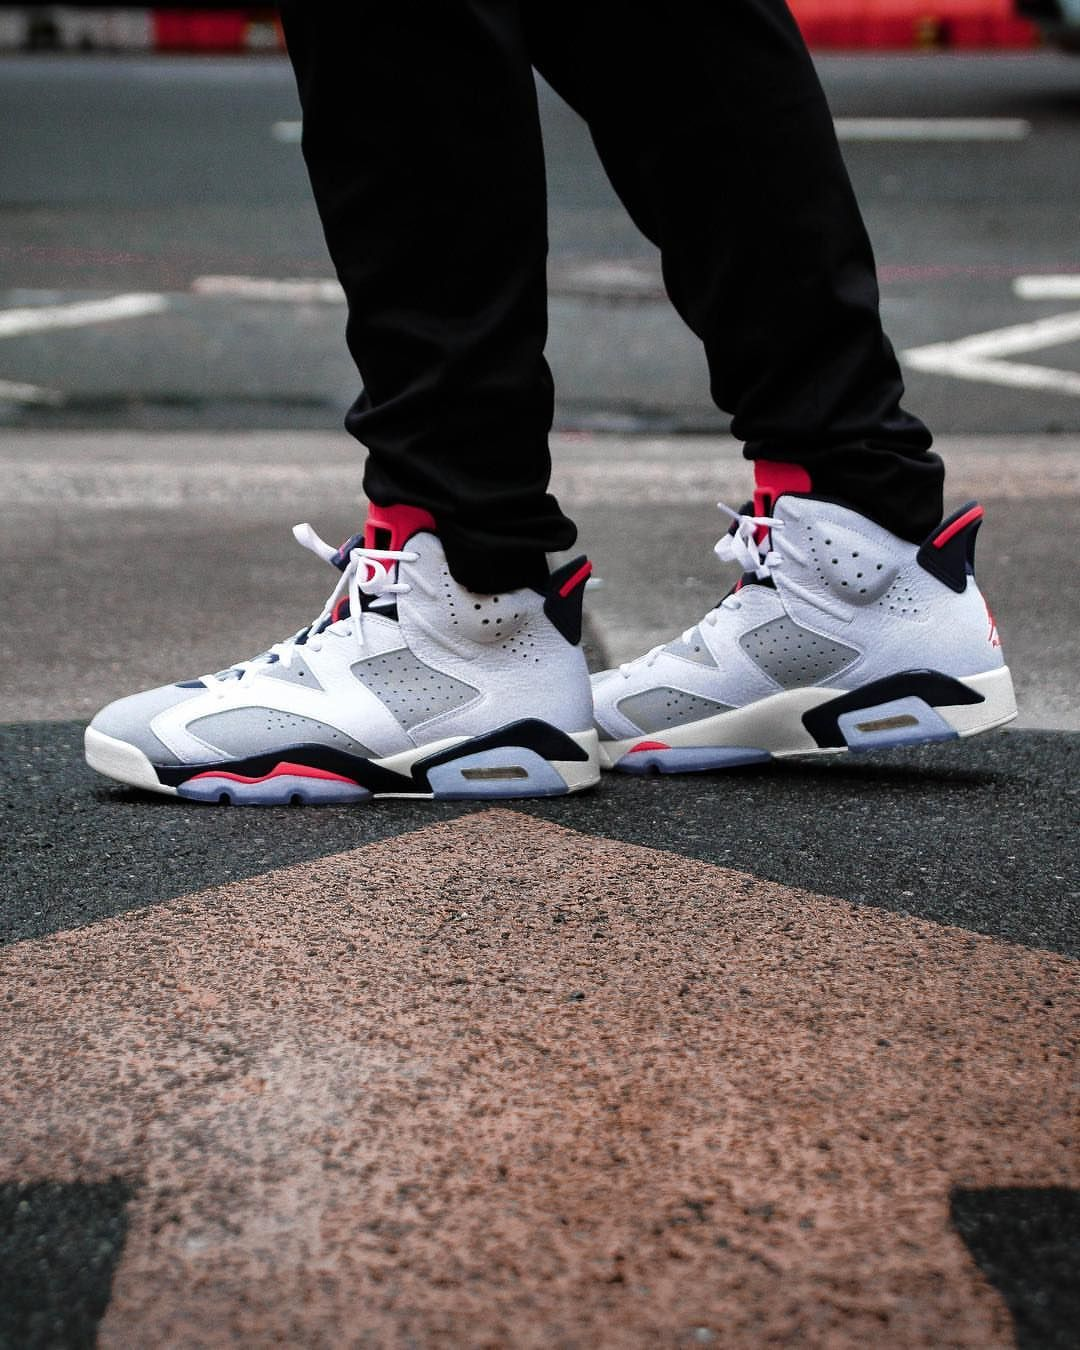 best service 9761d 42ab4 Air Jordan Retro 6 Tinker 'Air Trainer SC II' | Sneakers ...